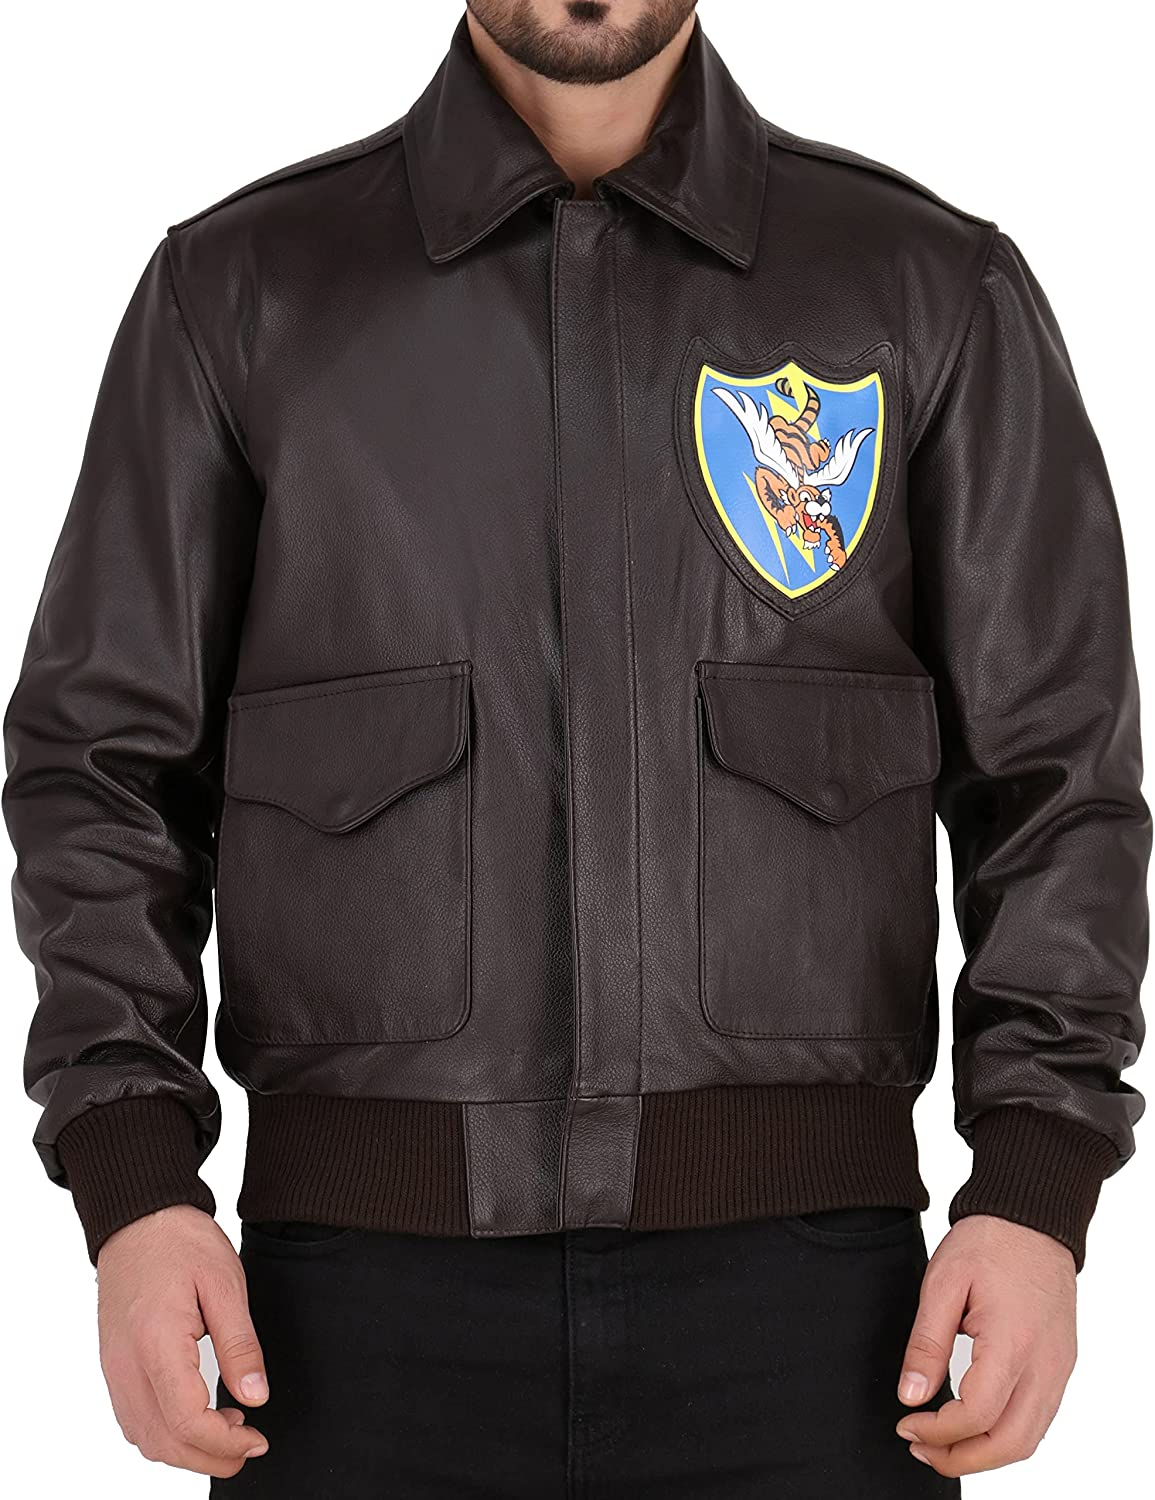 Jimmy Outfits A2 Aviator Brown WWII Flying Tiger Flight Jackets for men - Genuine Leather bomber jackets for men